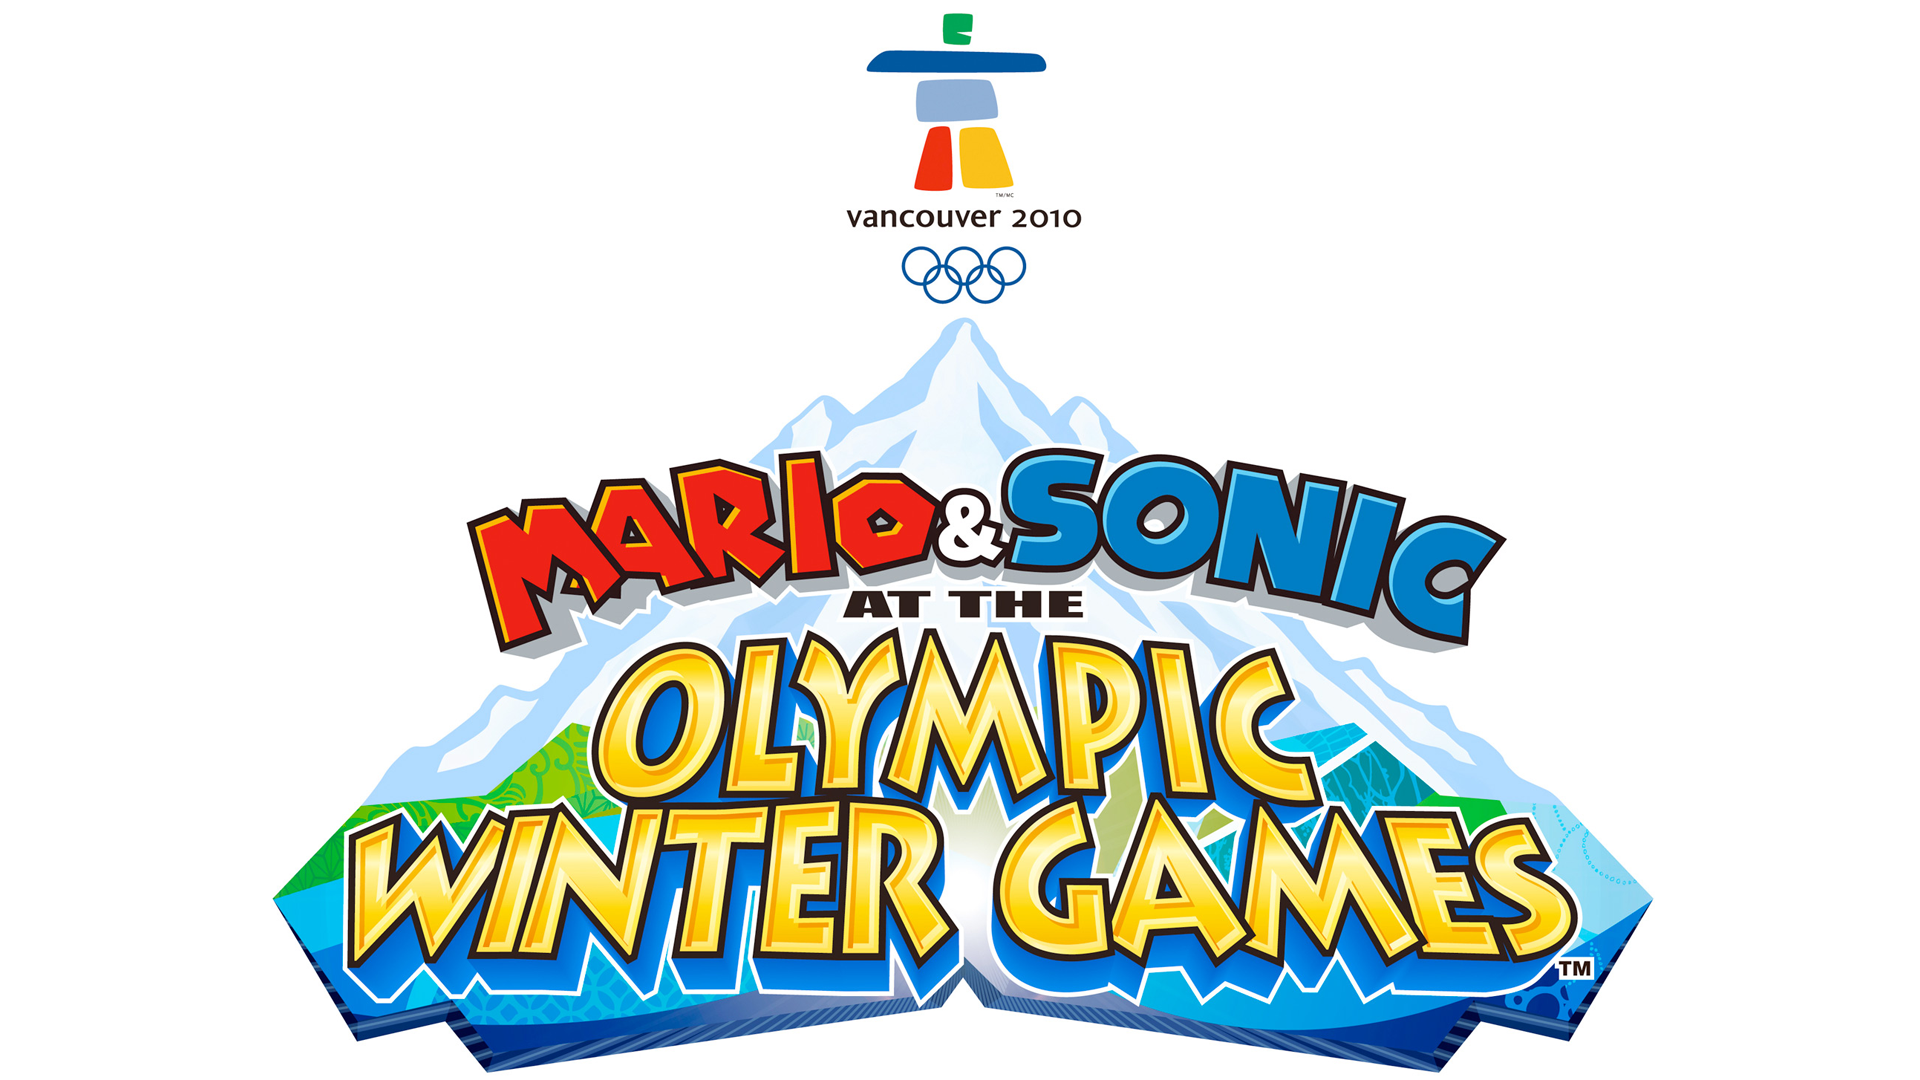 Mario & Sonic at the Olympic Winter Games (Wii) Logo